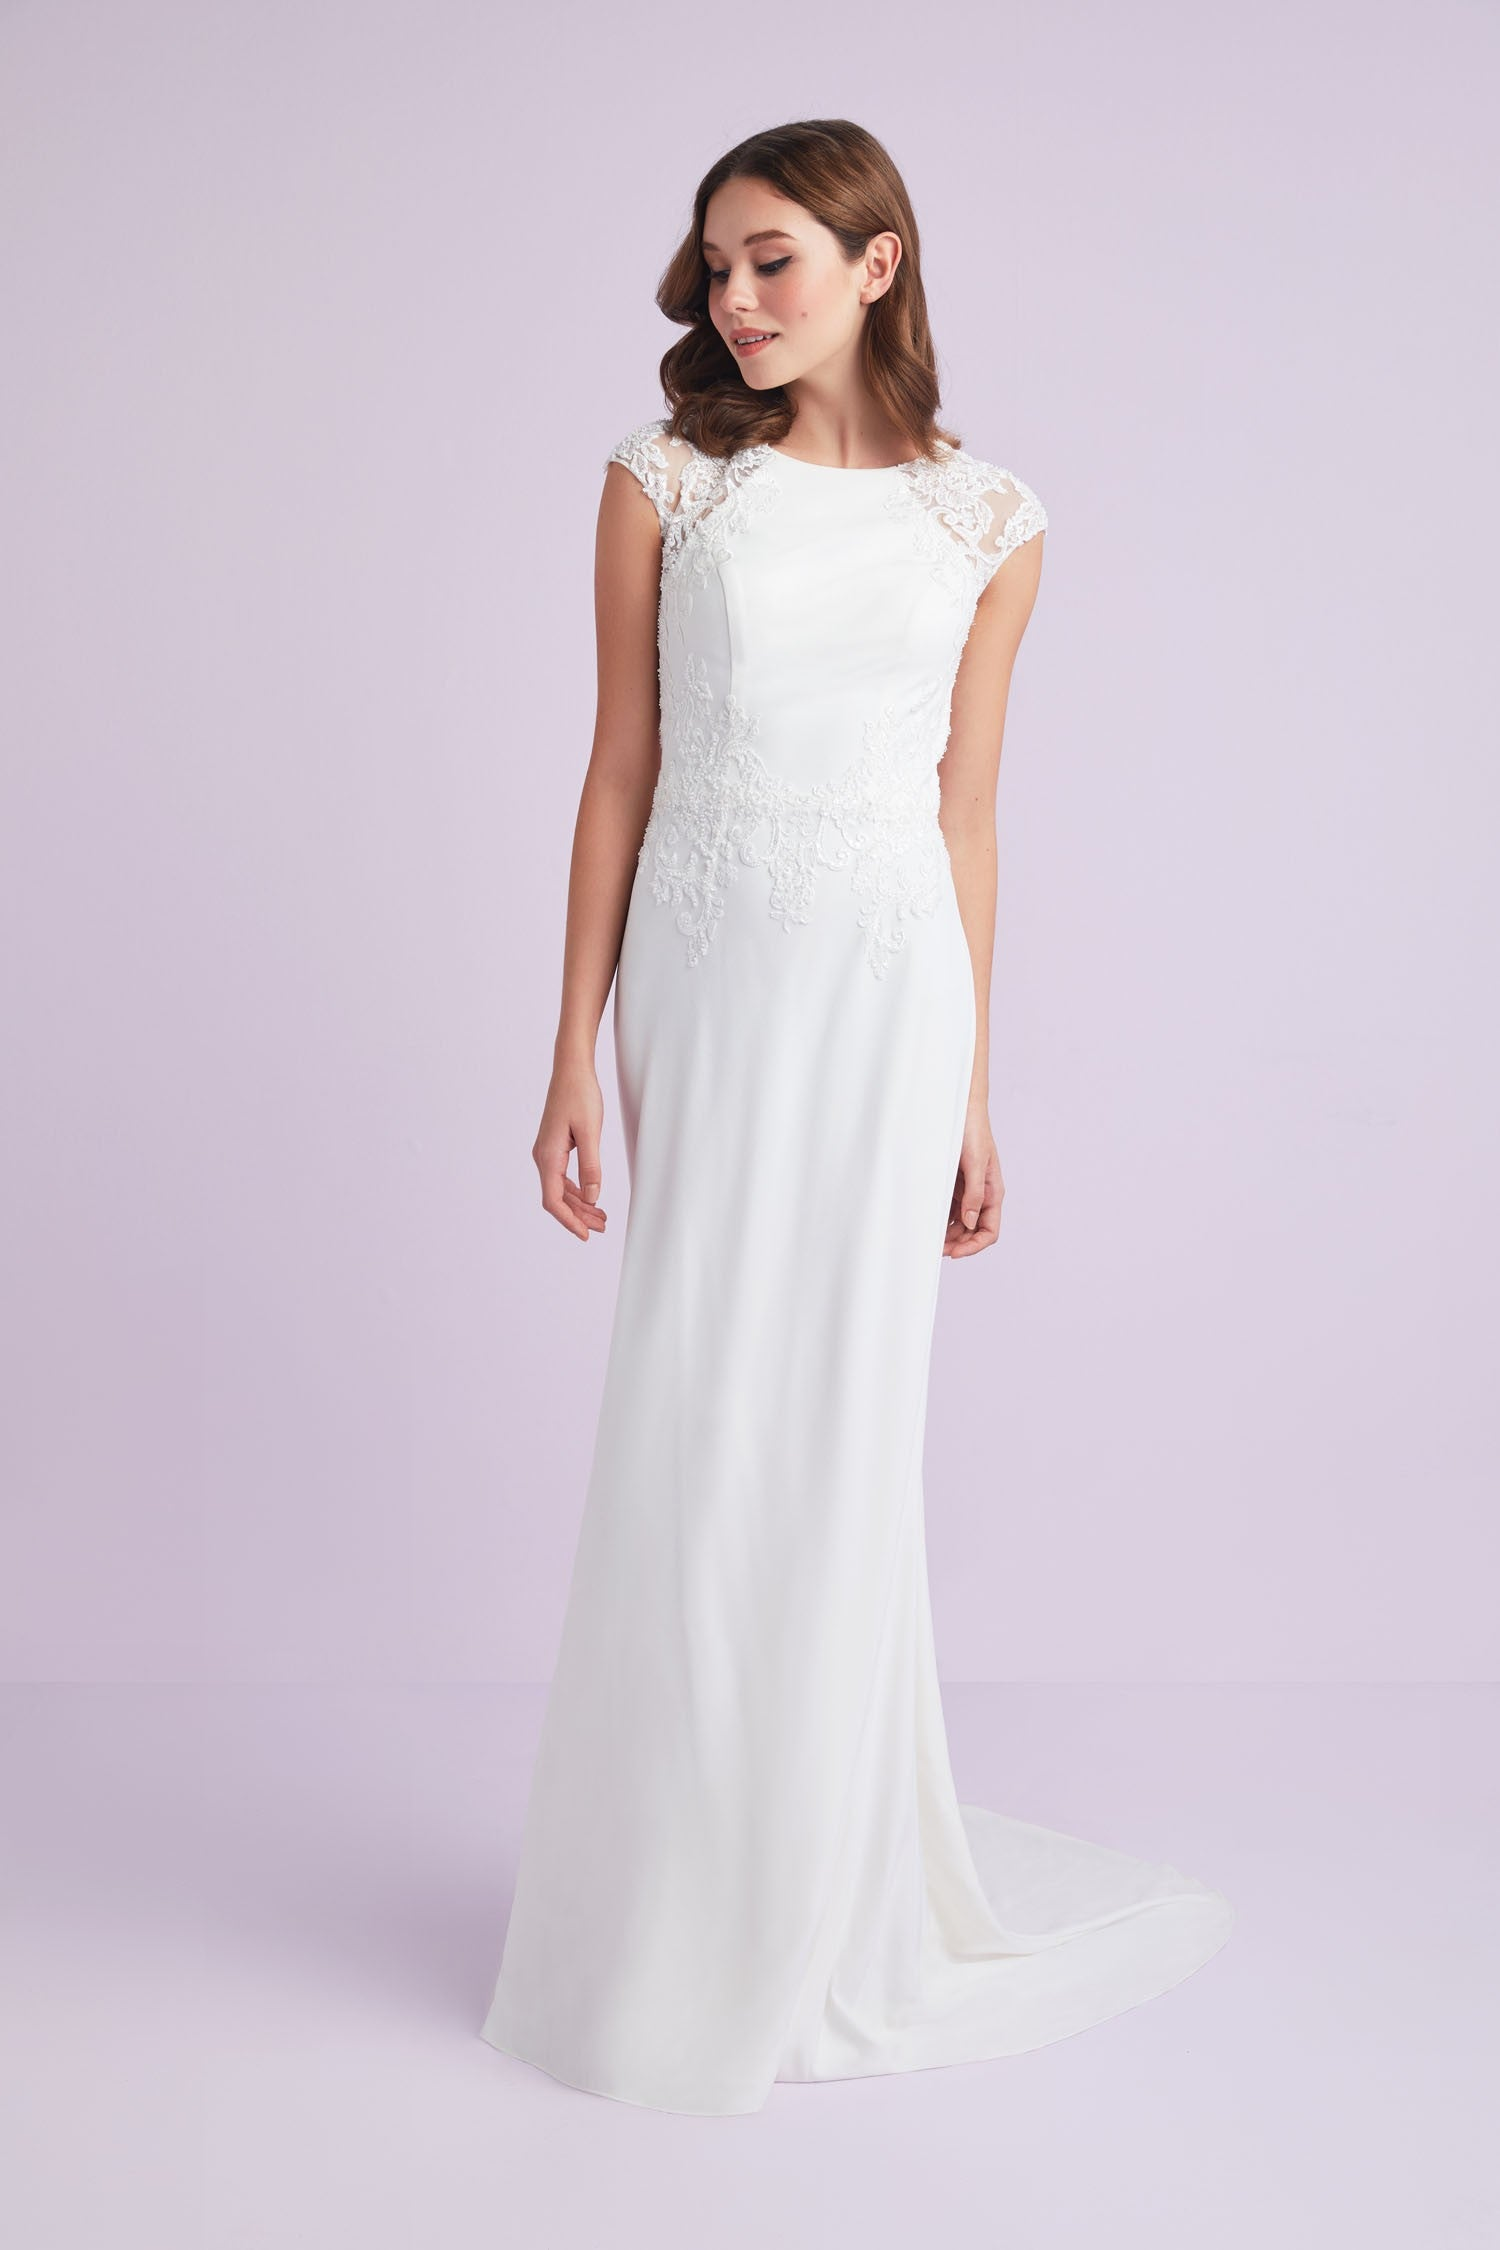 86118cfe9ce7 Affordable Wedding Dresses Online | Oleg Cassini Store